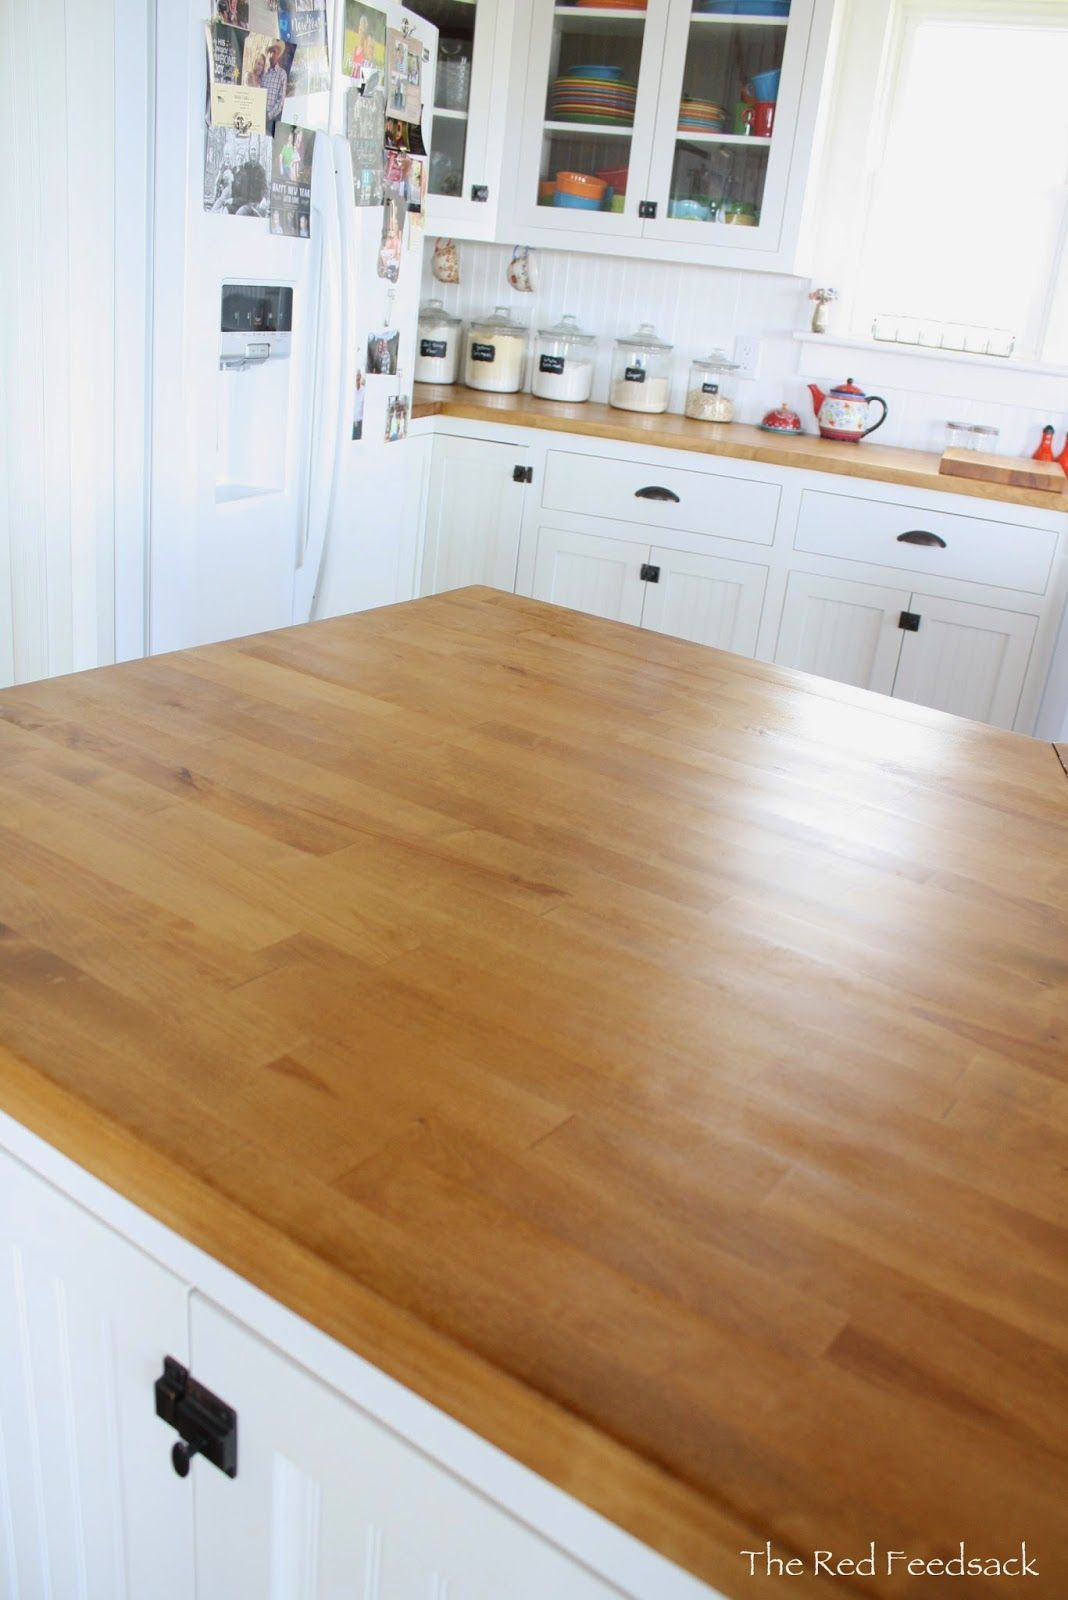 Tung Oil For Butcher Block Countertops I Also Ordered That From Real Milk Paint As I Have